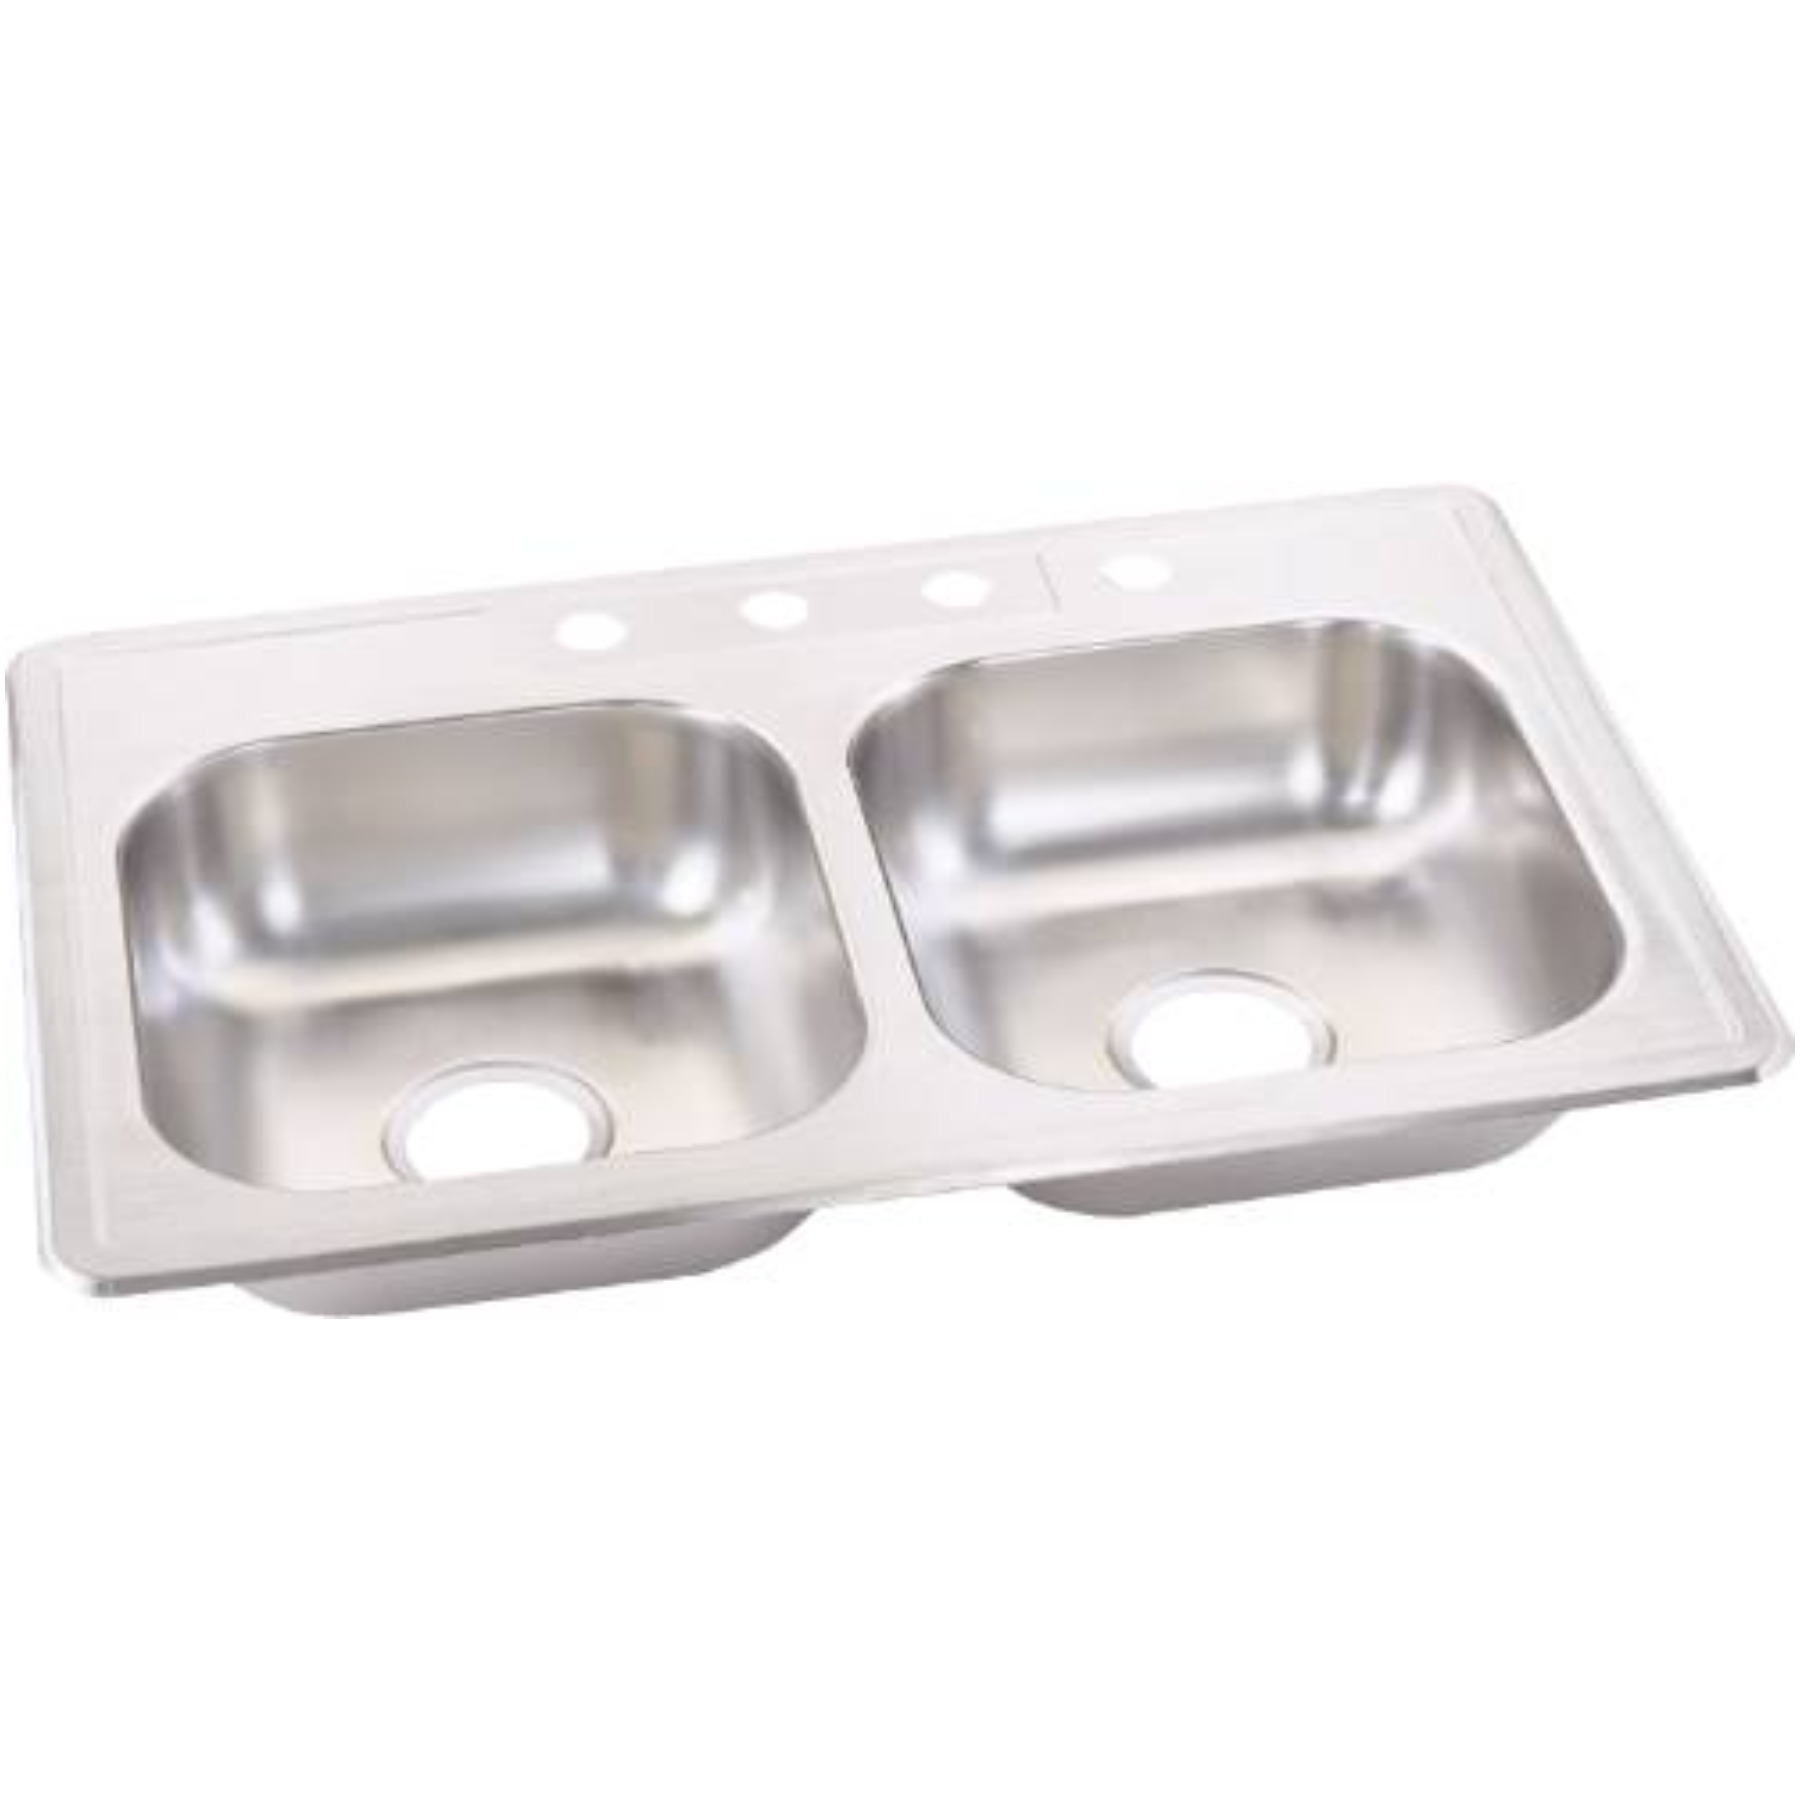 STERLING STAINLESS STEEL KITCHEN SINK DOUBLE BOWL 33 IN. X 22 IN. X 6 IN.